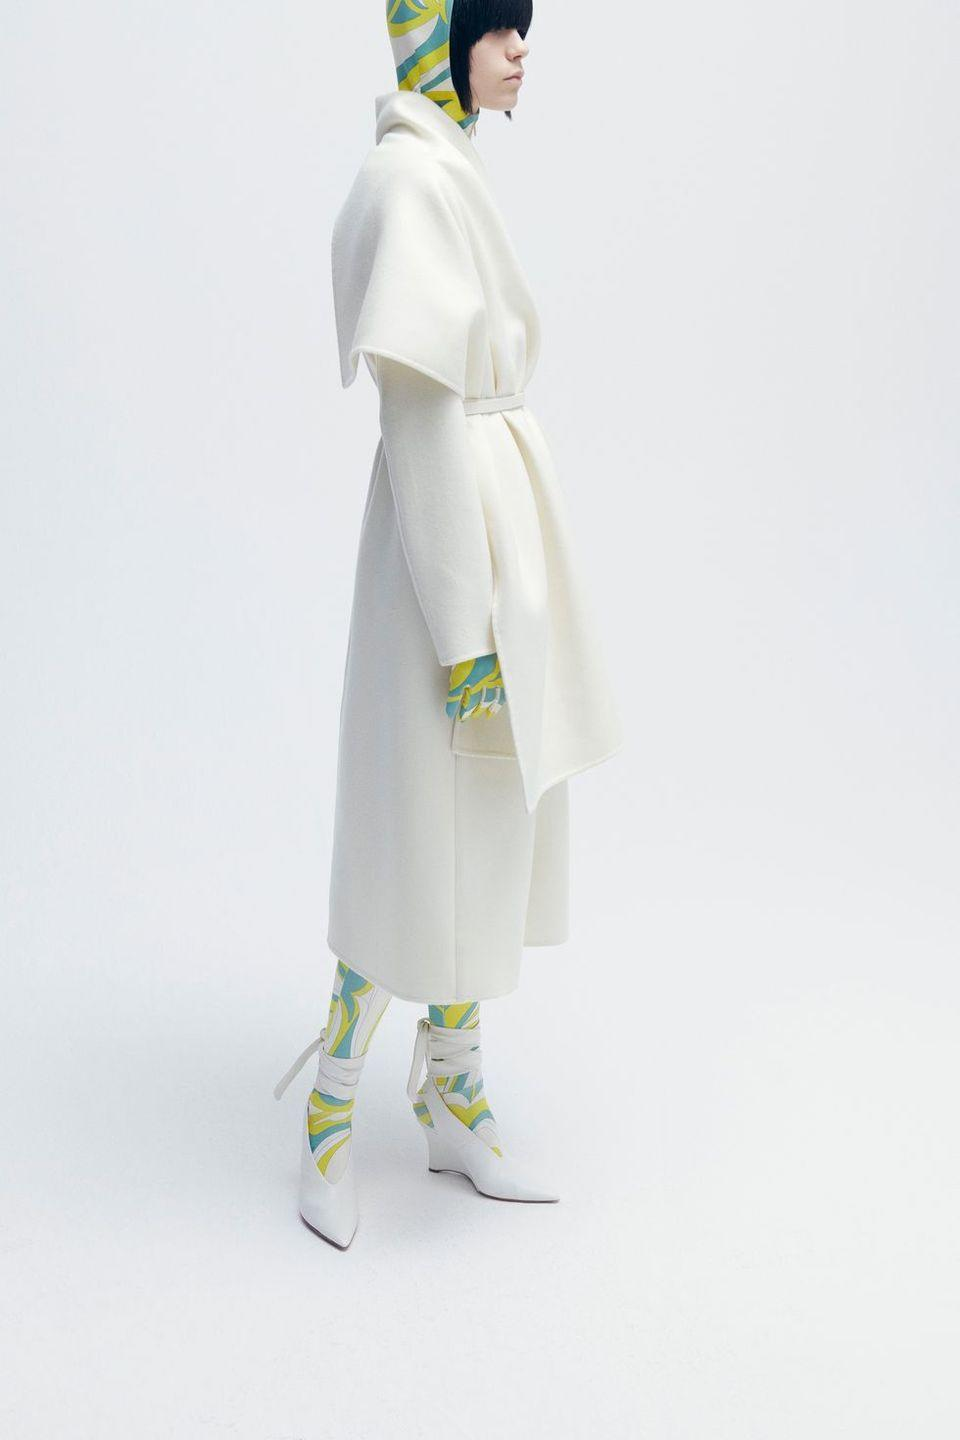 """<p>After a fall and winter where we did such little traveling and jetting and, honestly, living the good life, it's almost cruel to see a collection so clearly made for good wintry days out and about—almost. The prints and colors are as bold and happy as you'd expect, doing honor to Pucci himself who set out to """"Puccify all the seasons"""" after first launching in Capri. These are pieces meant for St. Tropez and St. Moritz, separates designed to be mixed and matched and intended to bring as much energetic delight in snow or sun (don't let the printed leggings fool you—there are shorts and saucily slit skirts too). Consider it the happiest pledge that next resort season will look nothing like the last.<em>—Leah Melby Clinton</em></p>"""